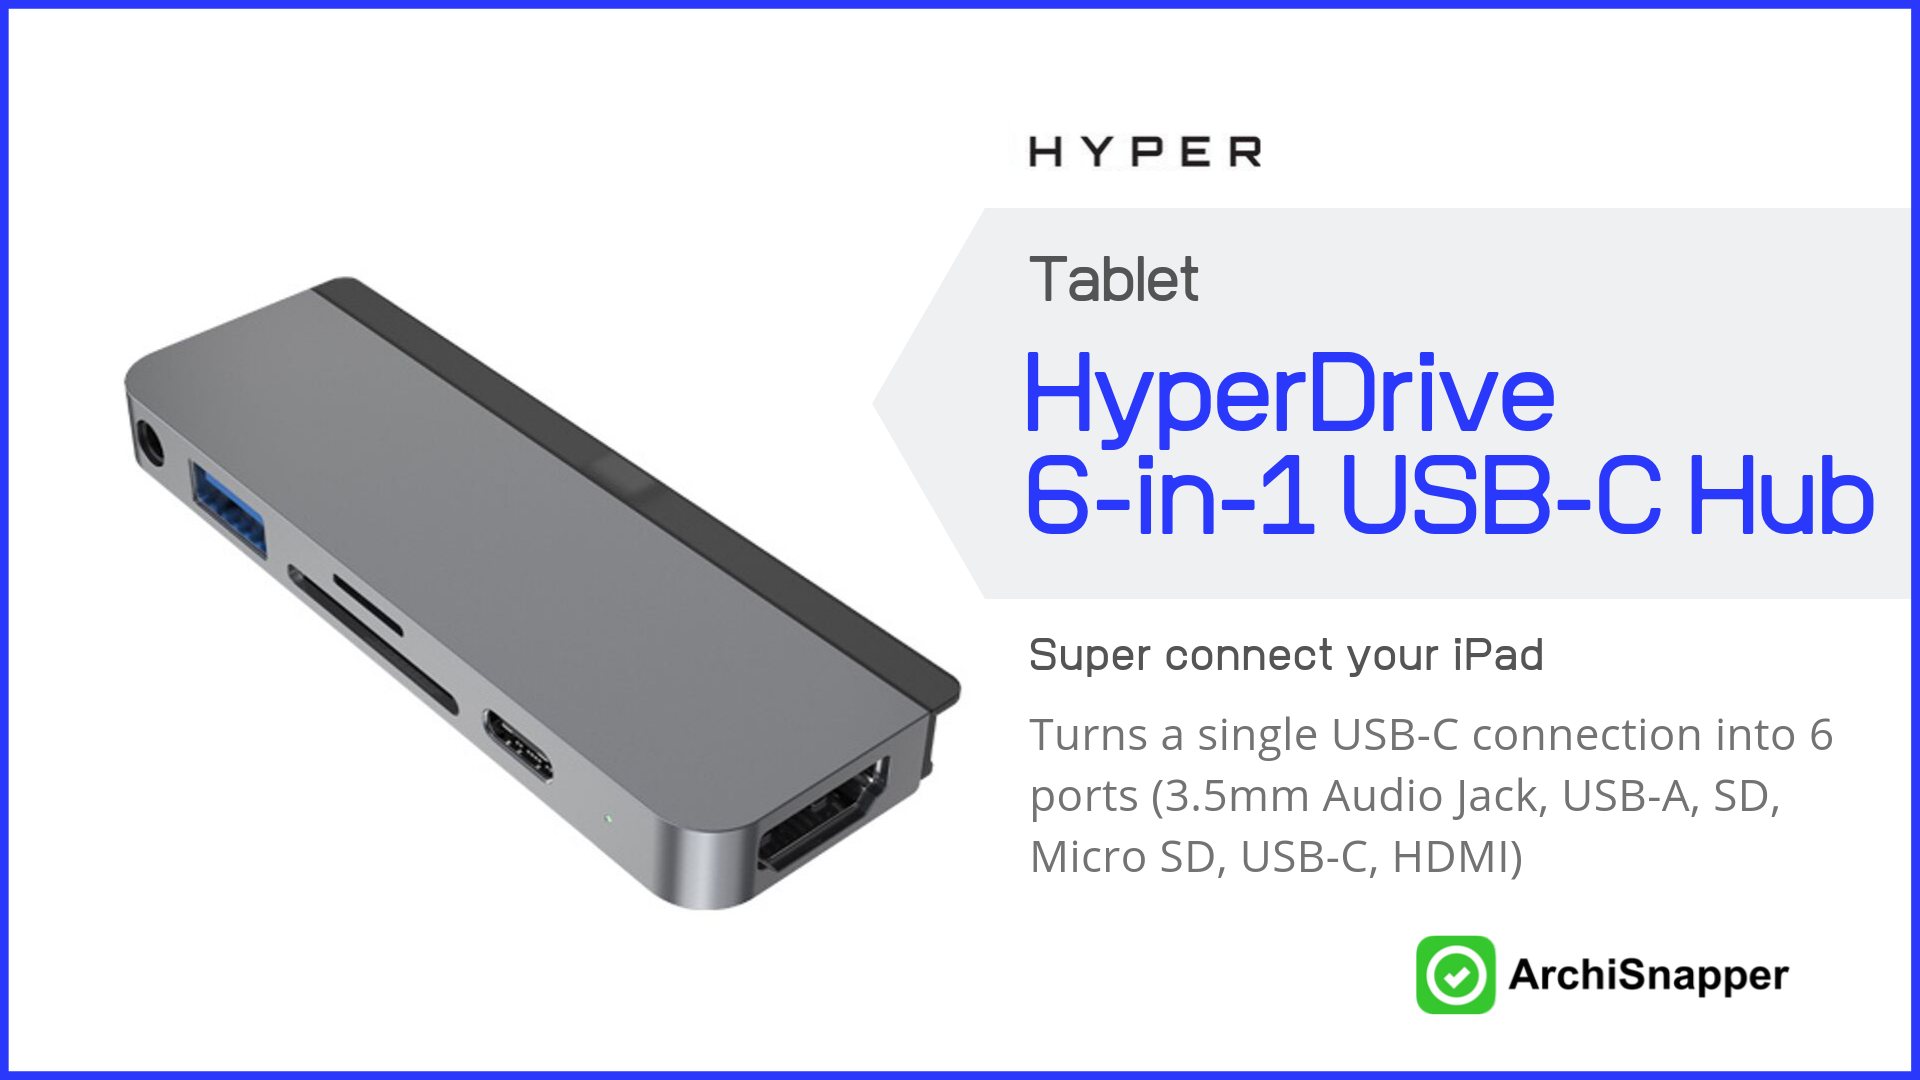 HyperDrive 6-in-1 USB-C Hub List of the 15 must-have tech tools and accessories ideal for architects presented by Archisnapper